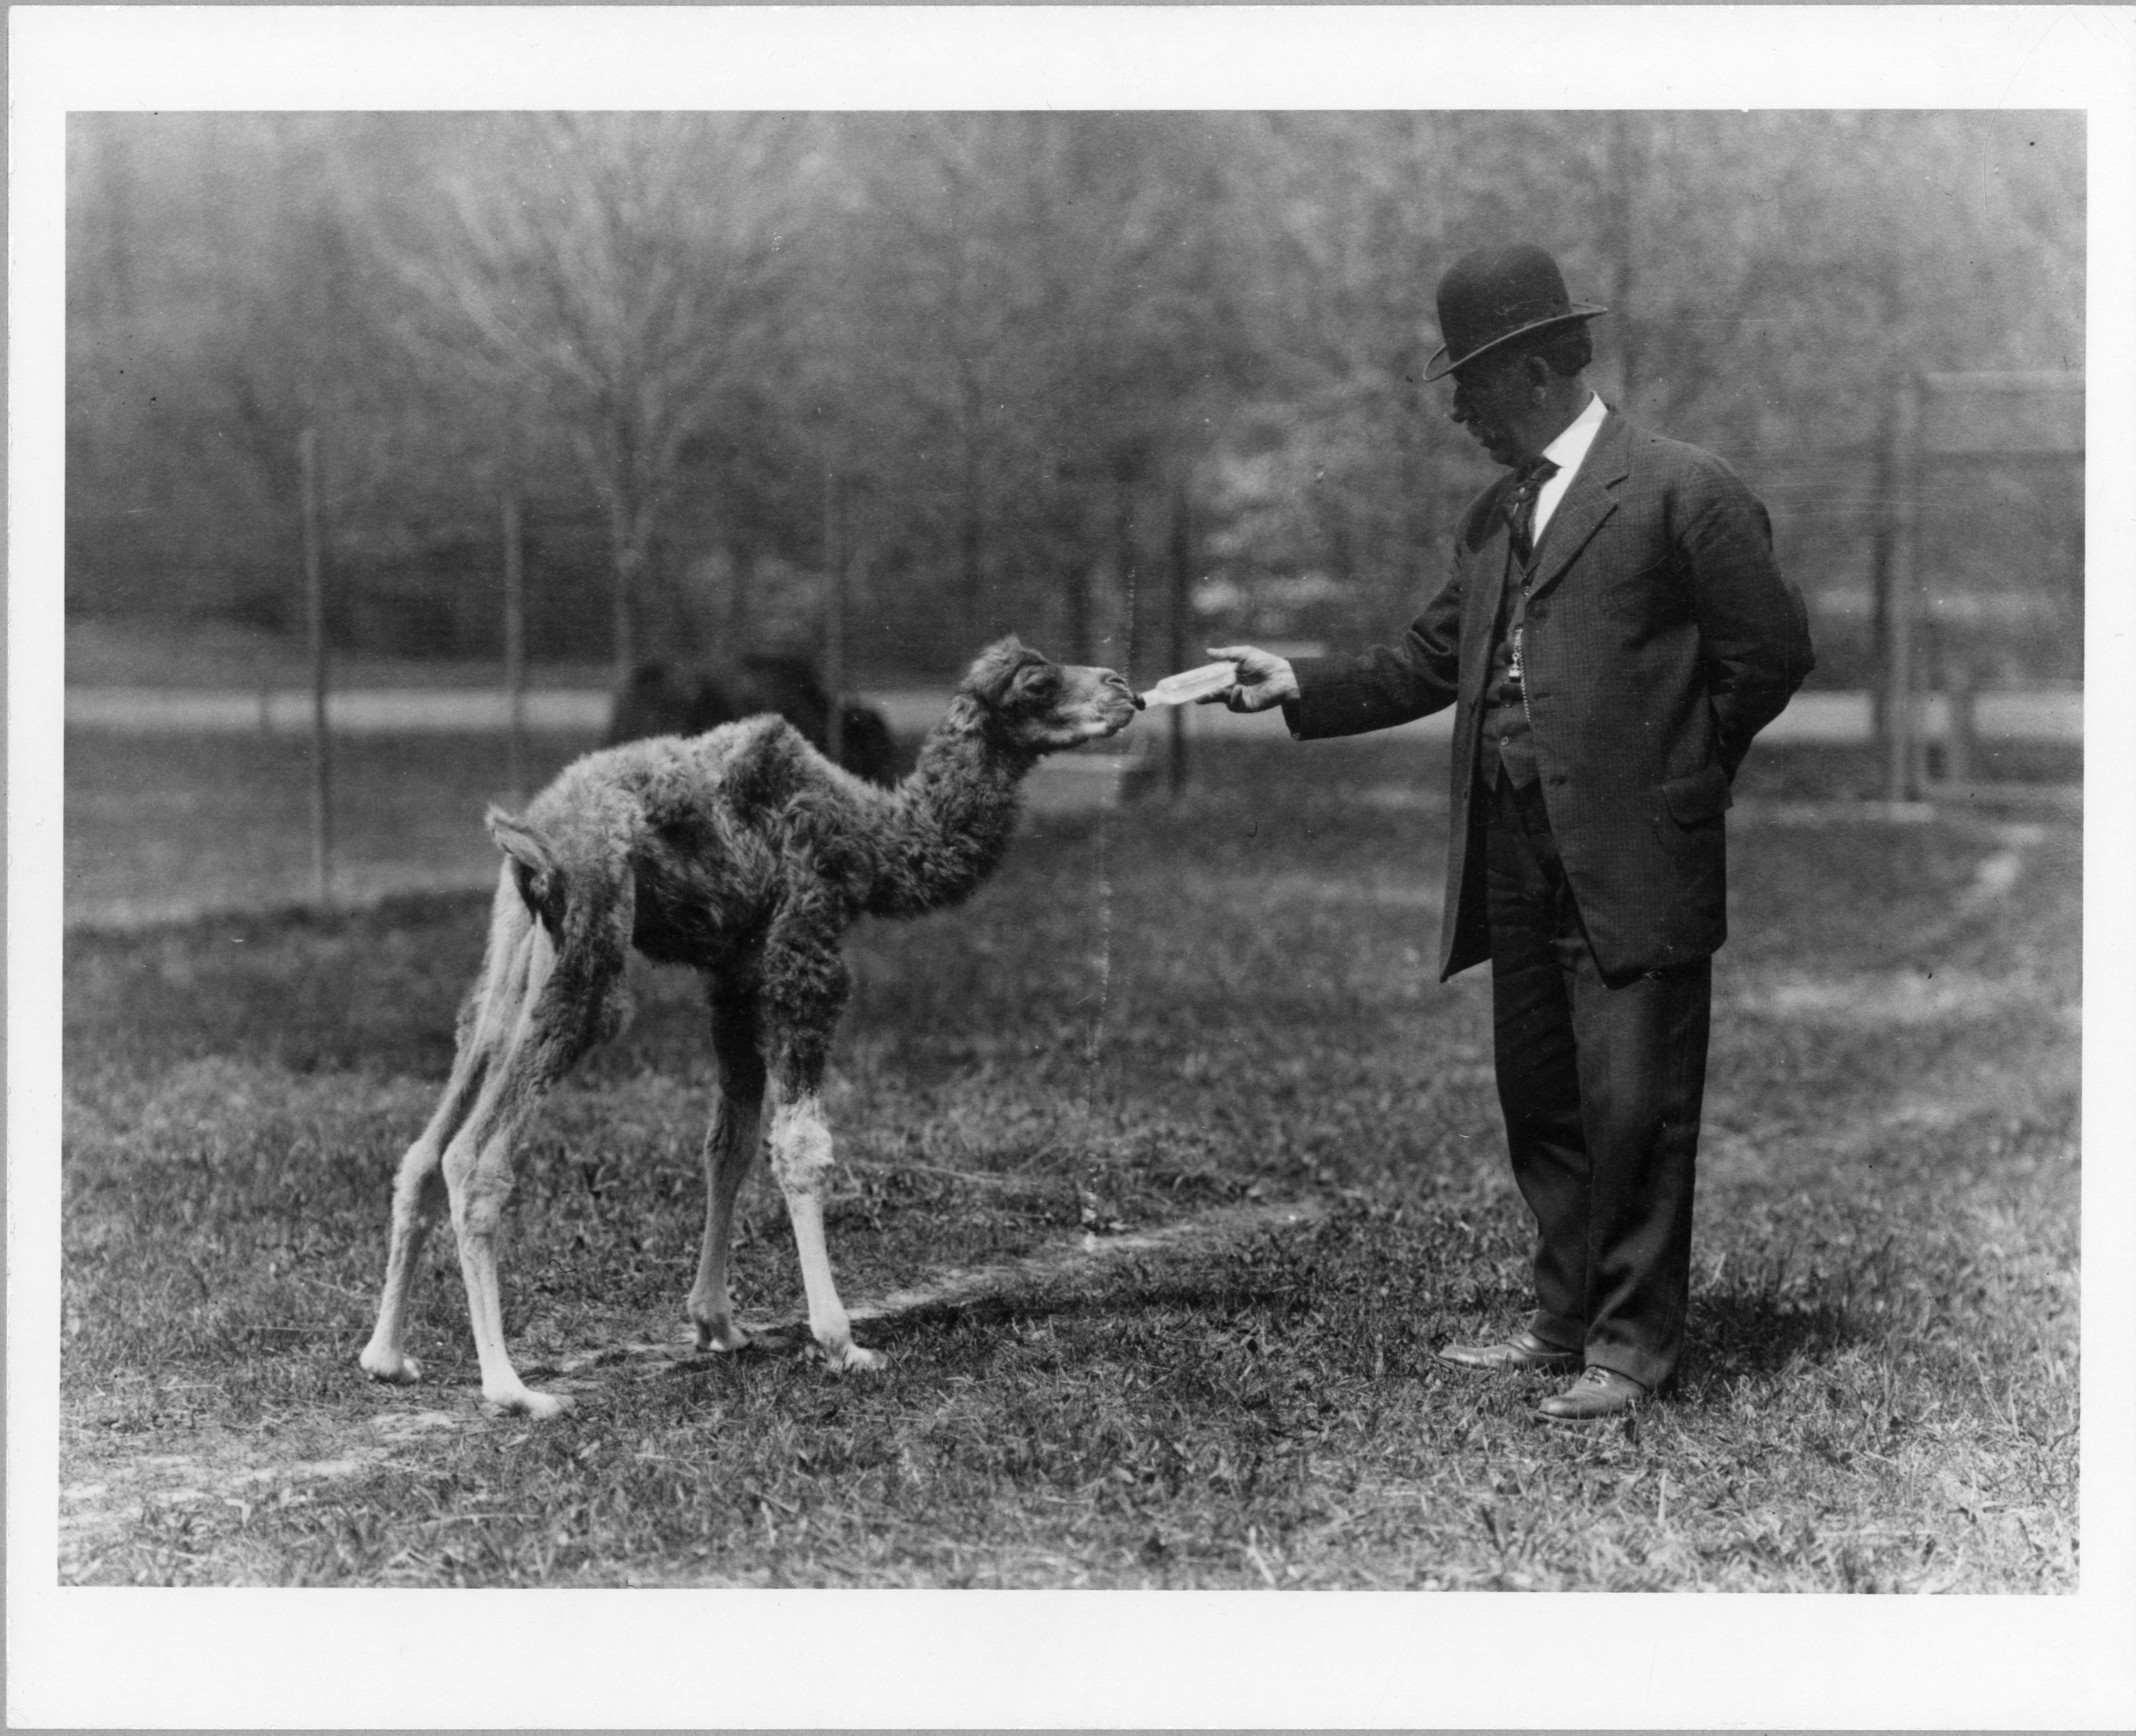 A man in a suit and hat holds a bottle up to the mouth of a camel in a field.